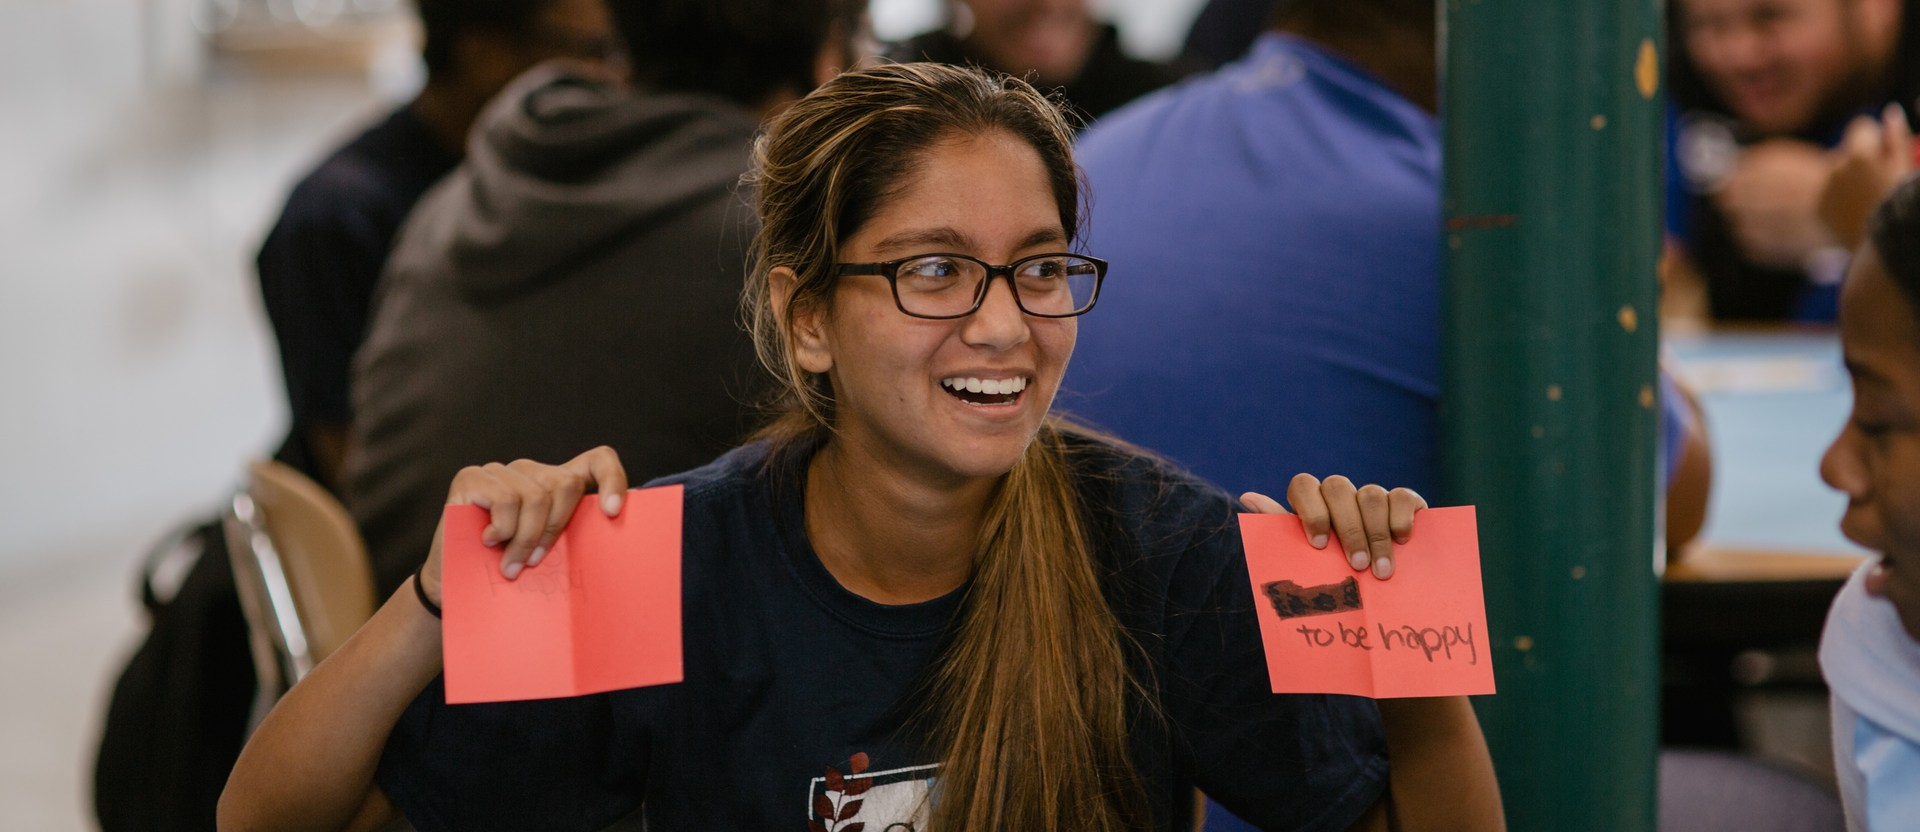 Student holding up flashcards